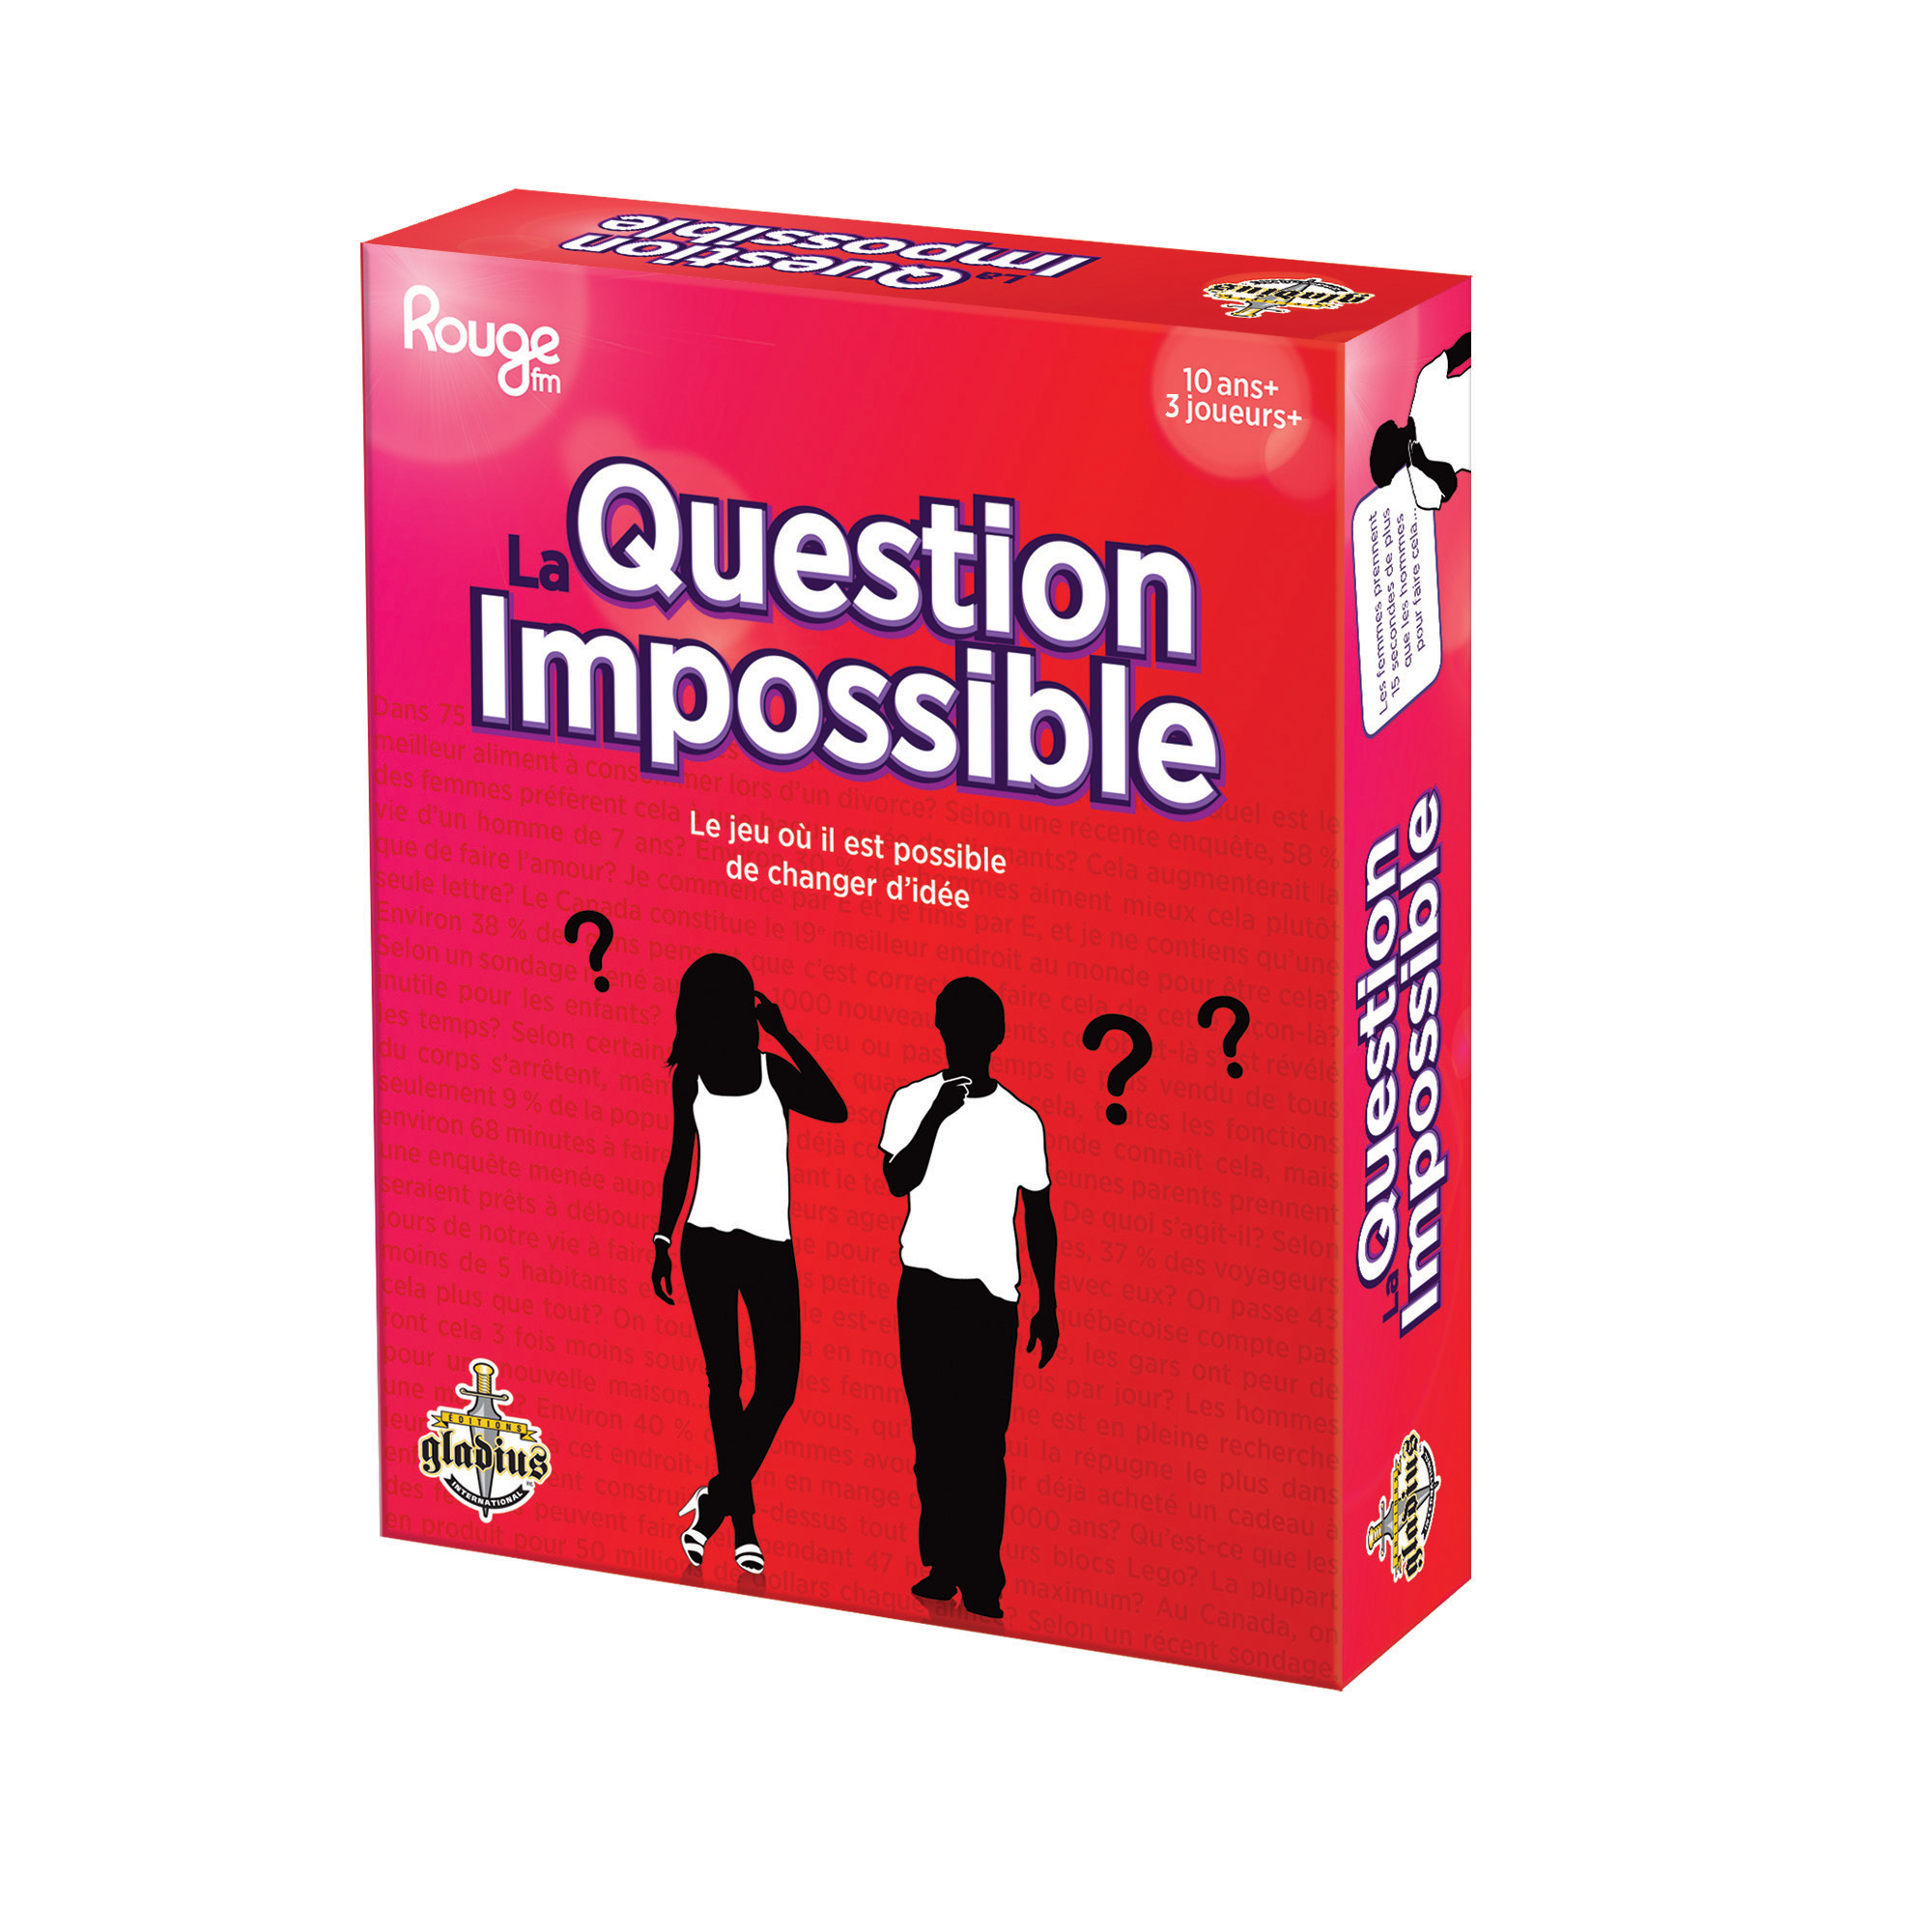 La Question Impossible boîte / La Question Impossible box